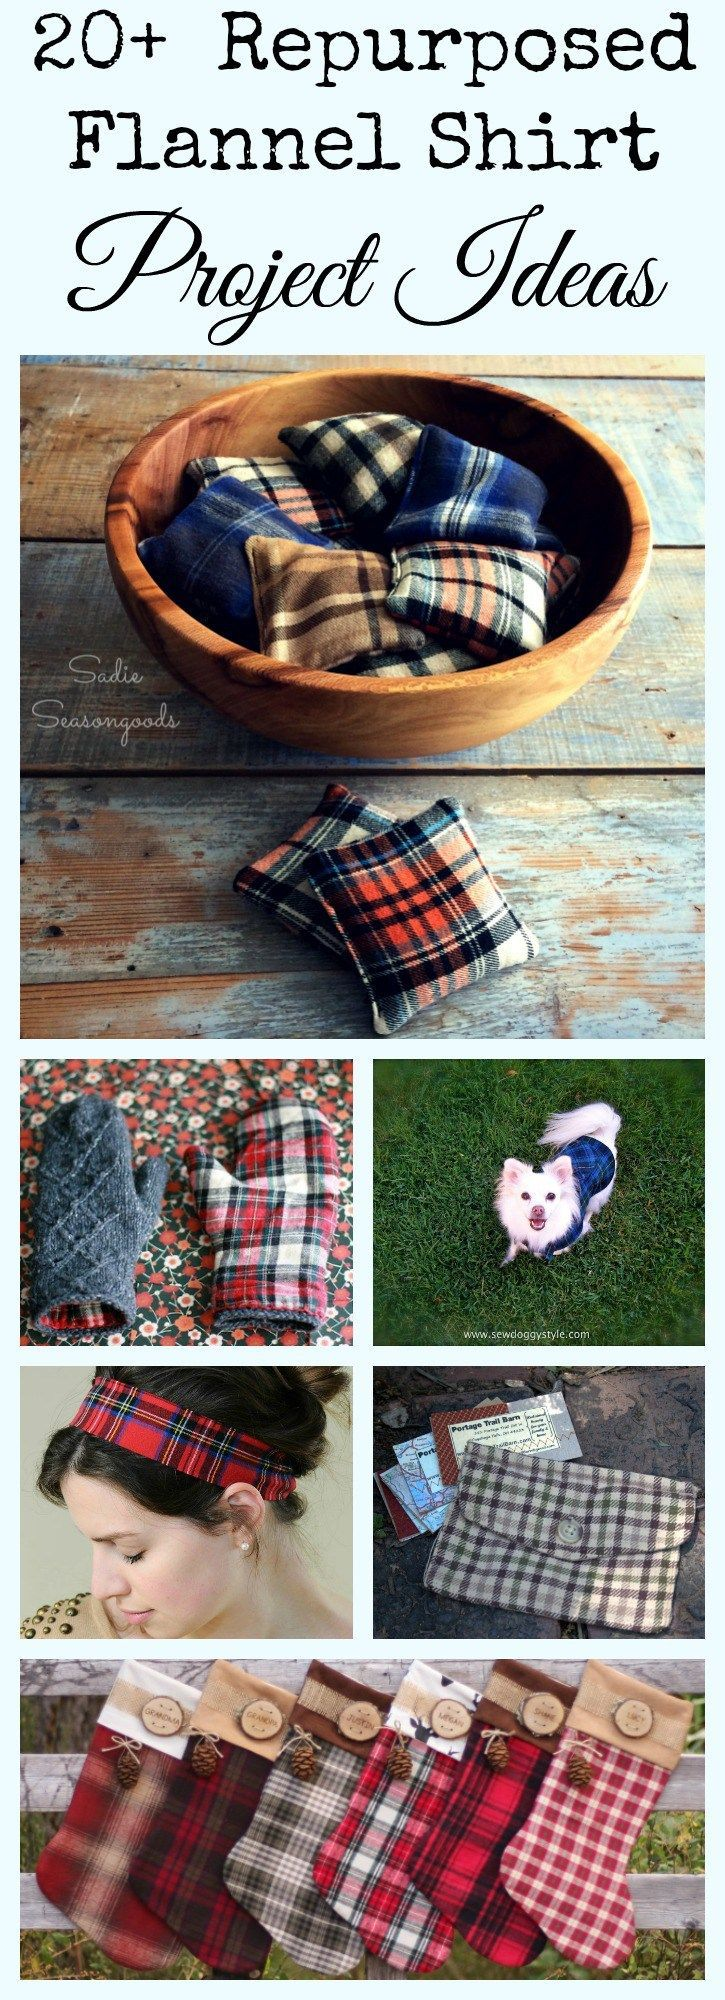 DIY Craft: Repurposed and Upcycled Flannel Shirt DIY craft project ideas for autumn, fall, and winter holiday compiled by Sadie Seasongoods / <a href=